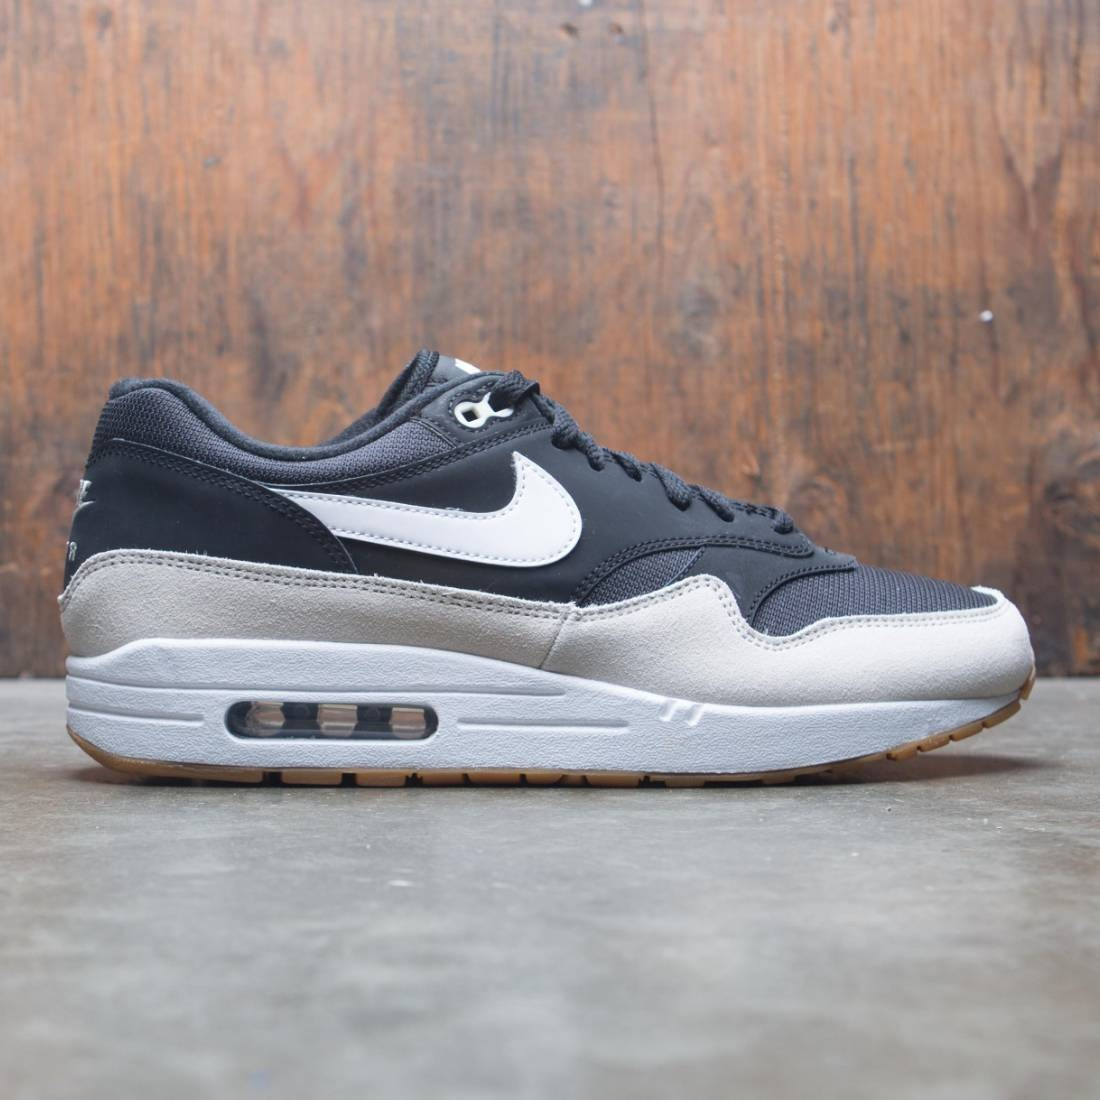 Nike Air Max 1 BlackLight BoneWhite AH8145 009